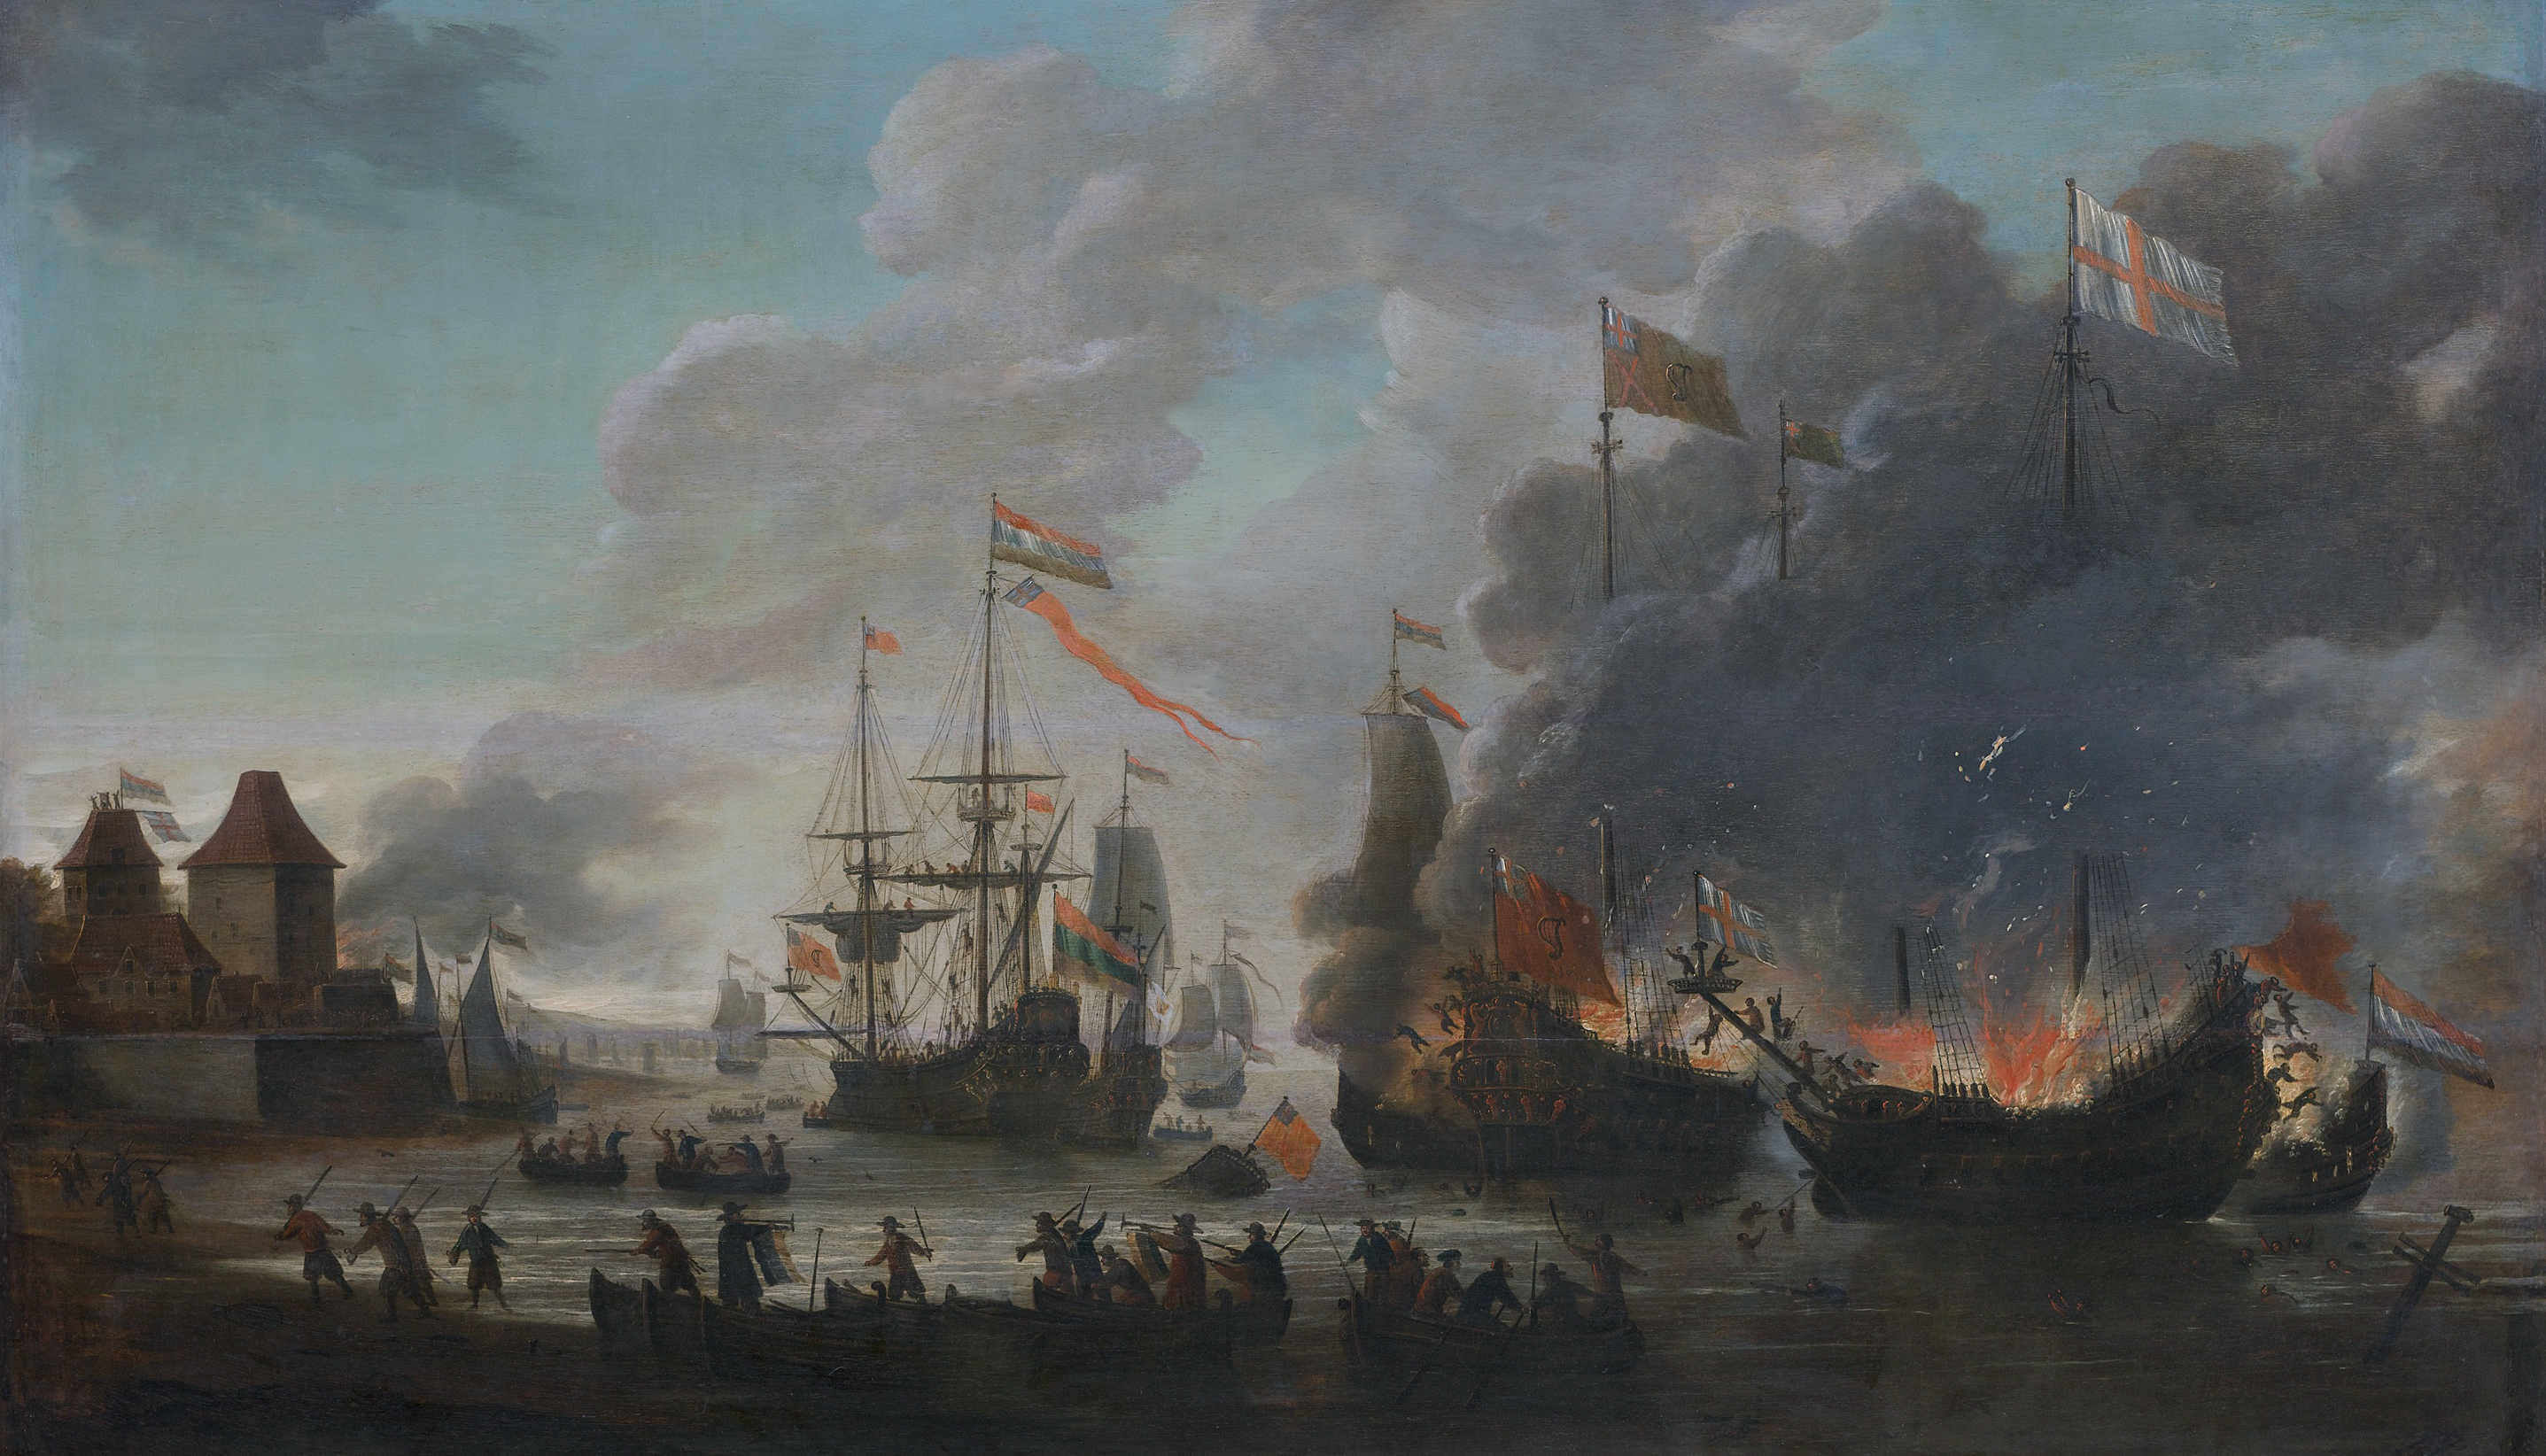 Jan Van Leyden, The Dutch burning English ships during the Raid on the Medway, 20 June 1667 (c.1667-69)